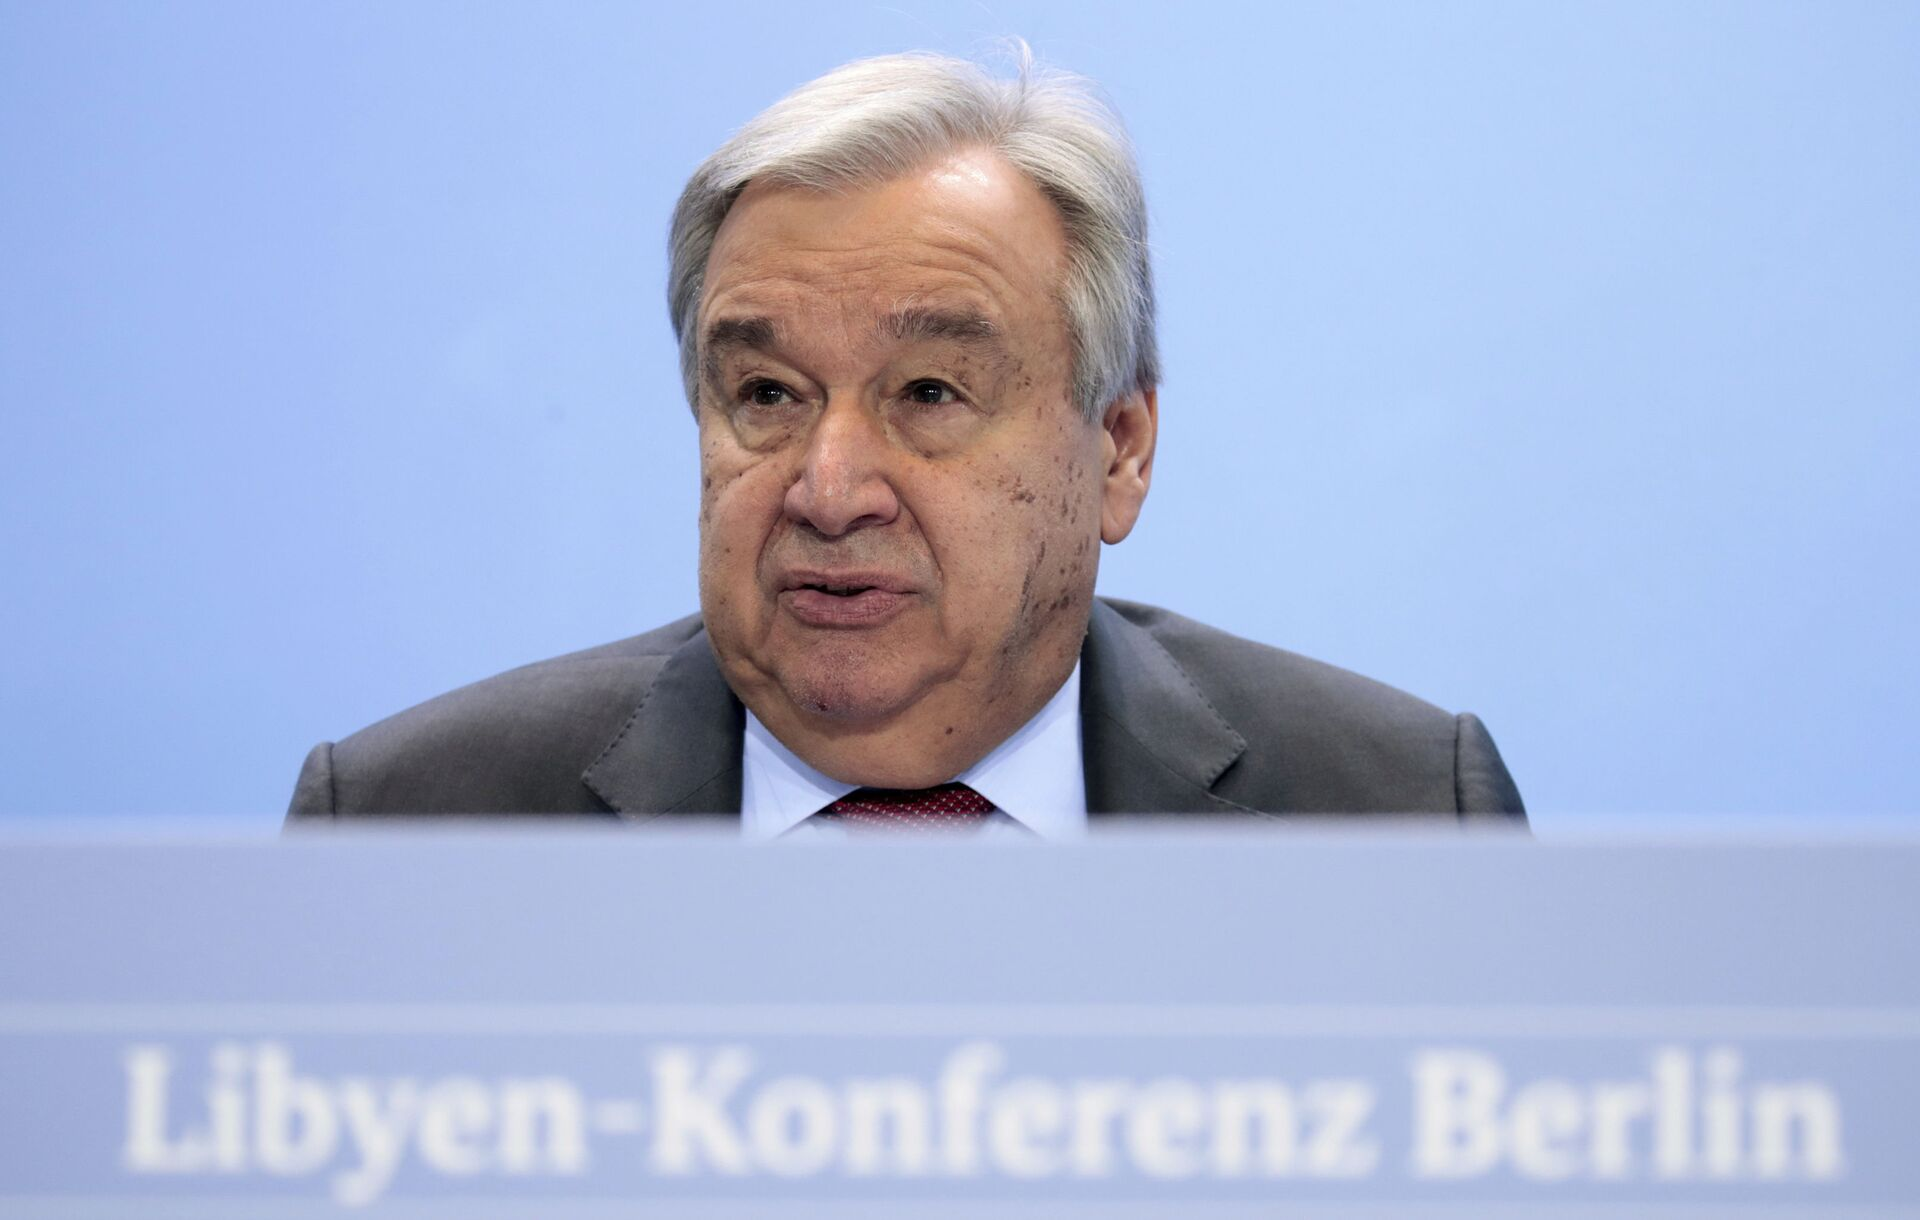 United Nations Secretary-General Antonio Guterres speaks during a news conference after the conference on Libya at the chancellery in Berlin, Germany, Sunday, Jan. 19, 2020.  - Sputnik International, 1920, 17.09.2021